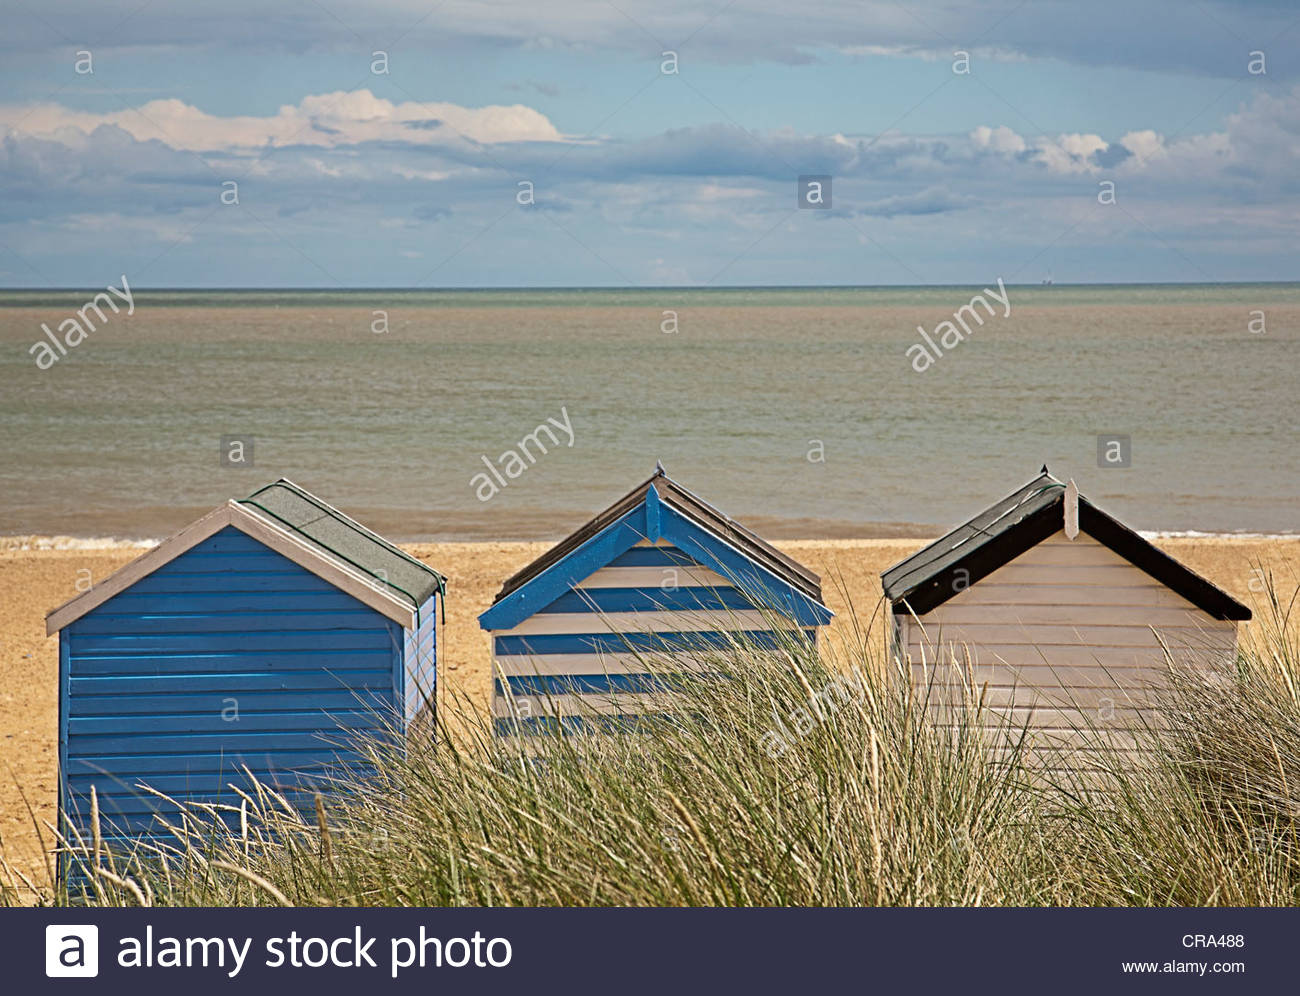 Brightly colored huts on beach - Stock Image